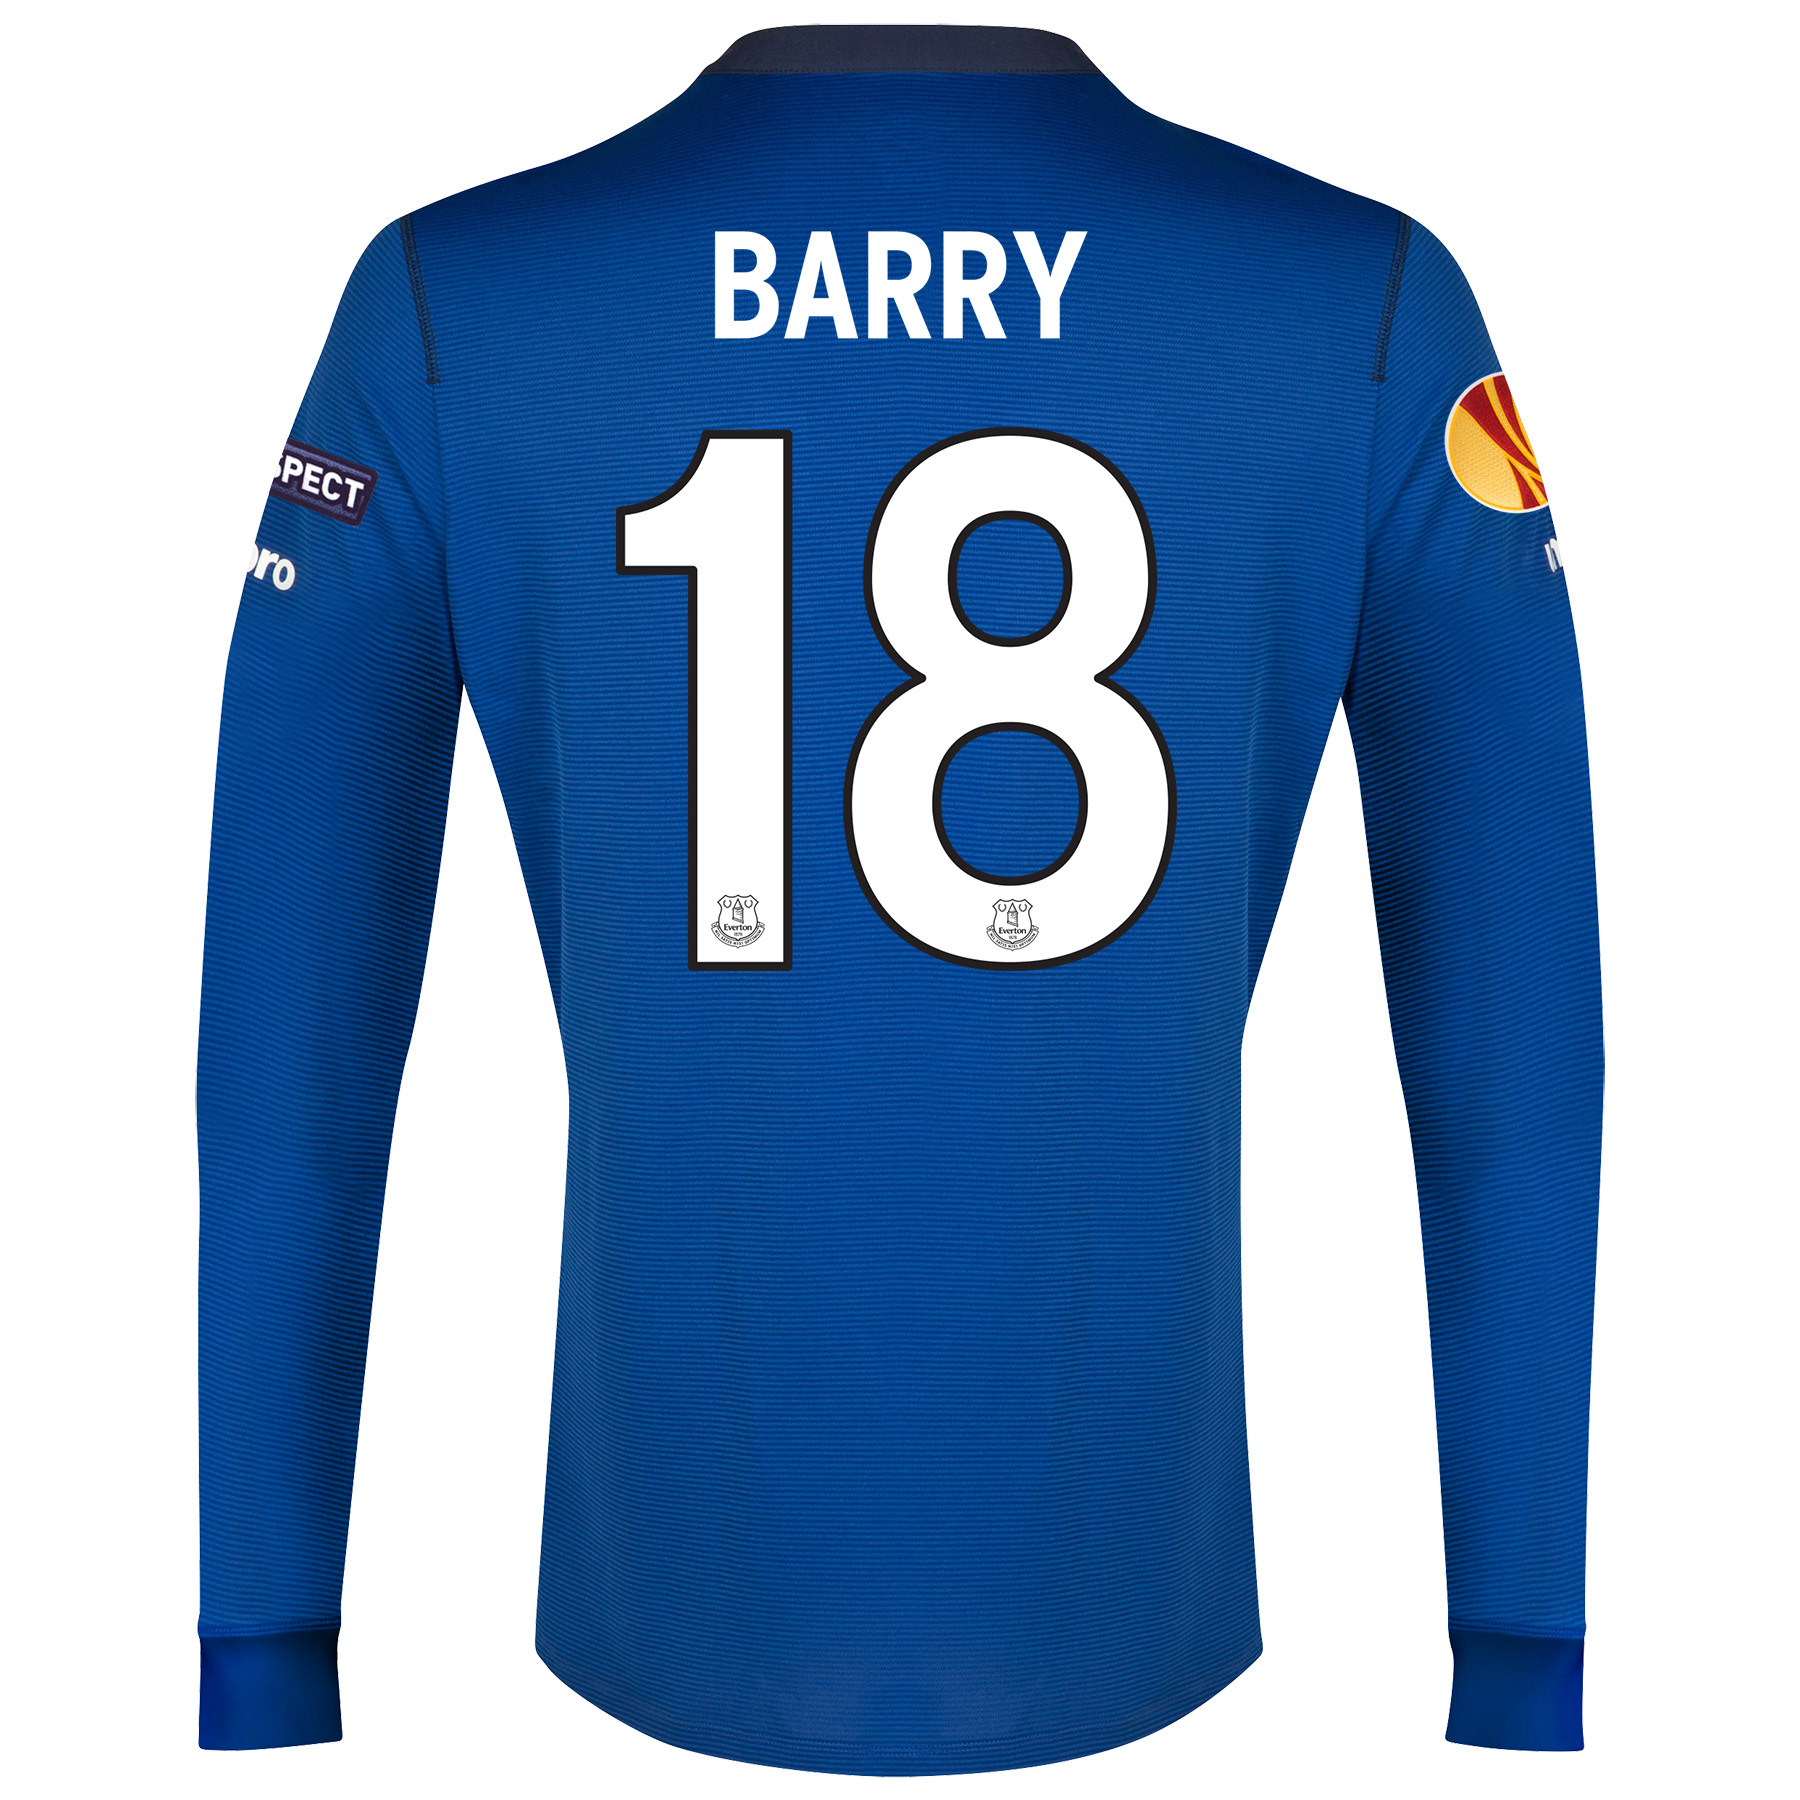 Everton UEFA Europa League Home Shirt 2014/15 LS with Barry 18 printing